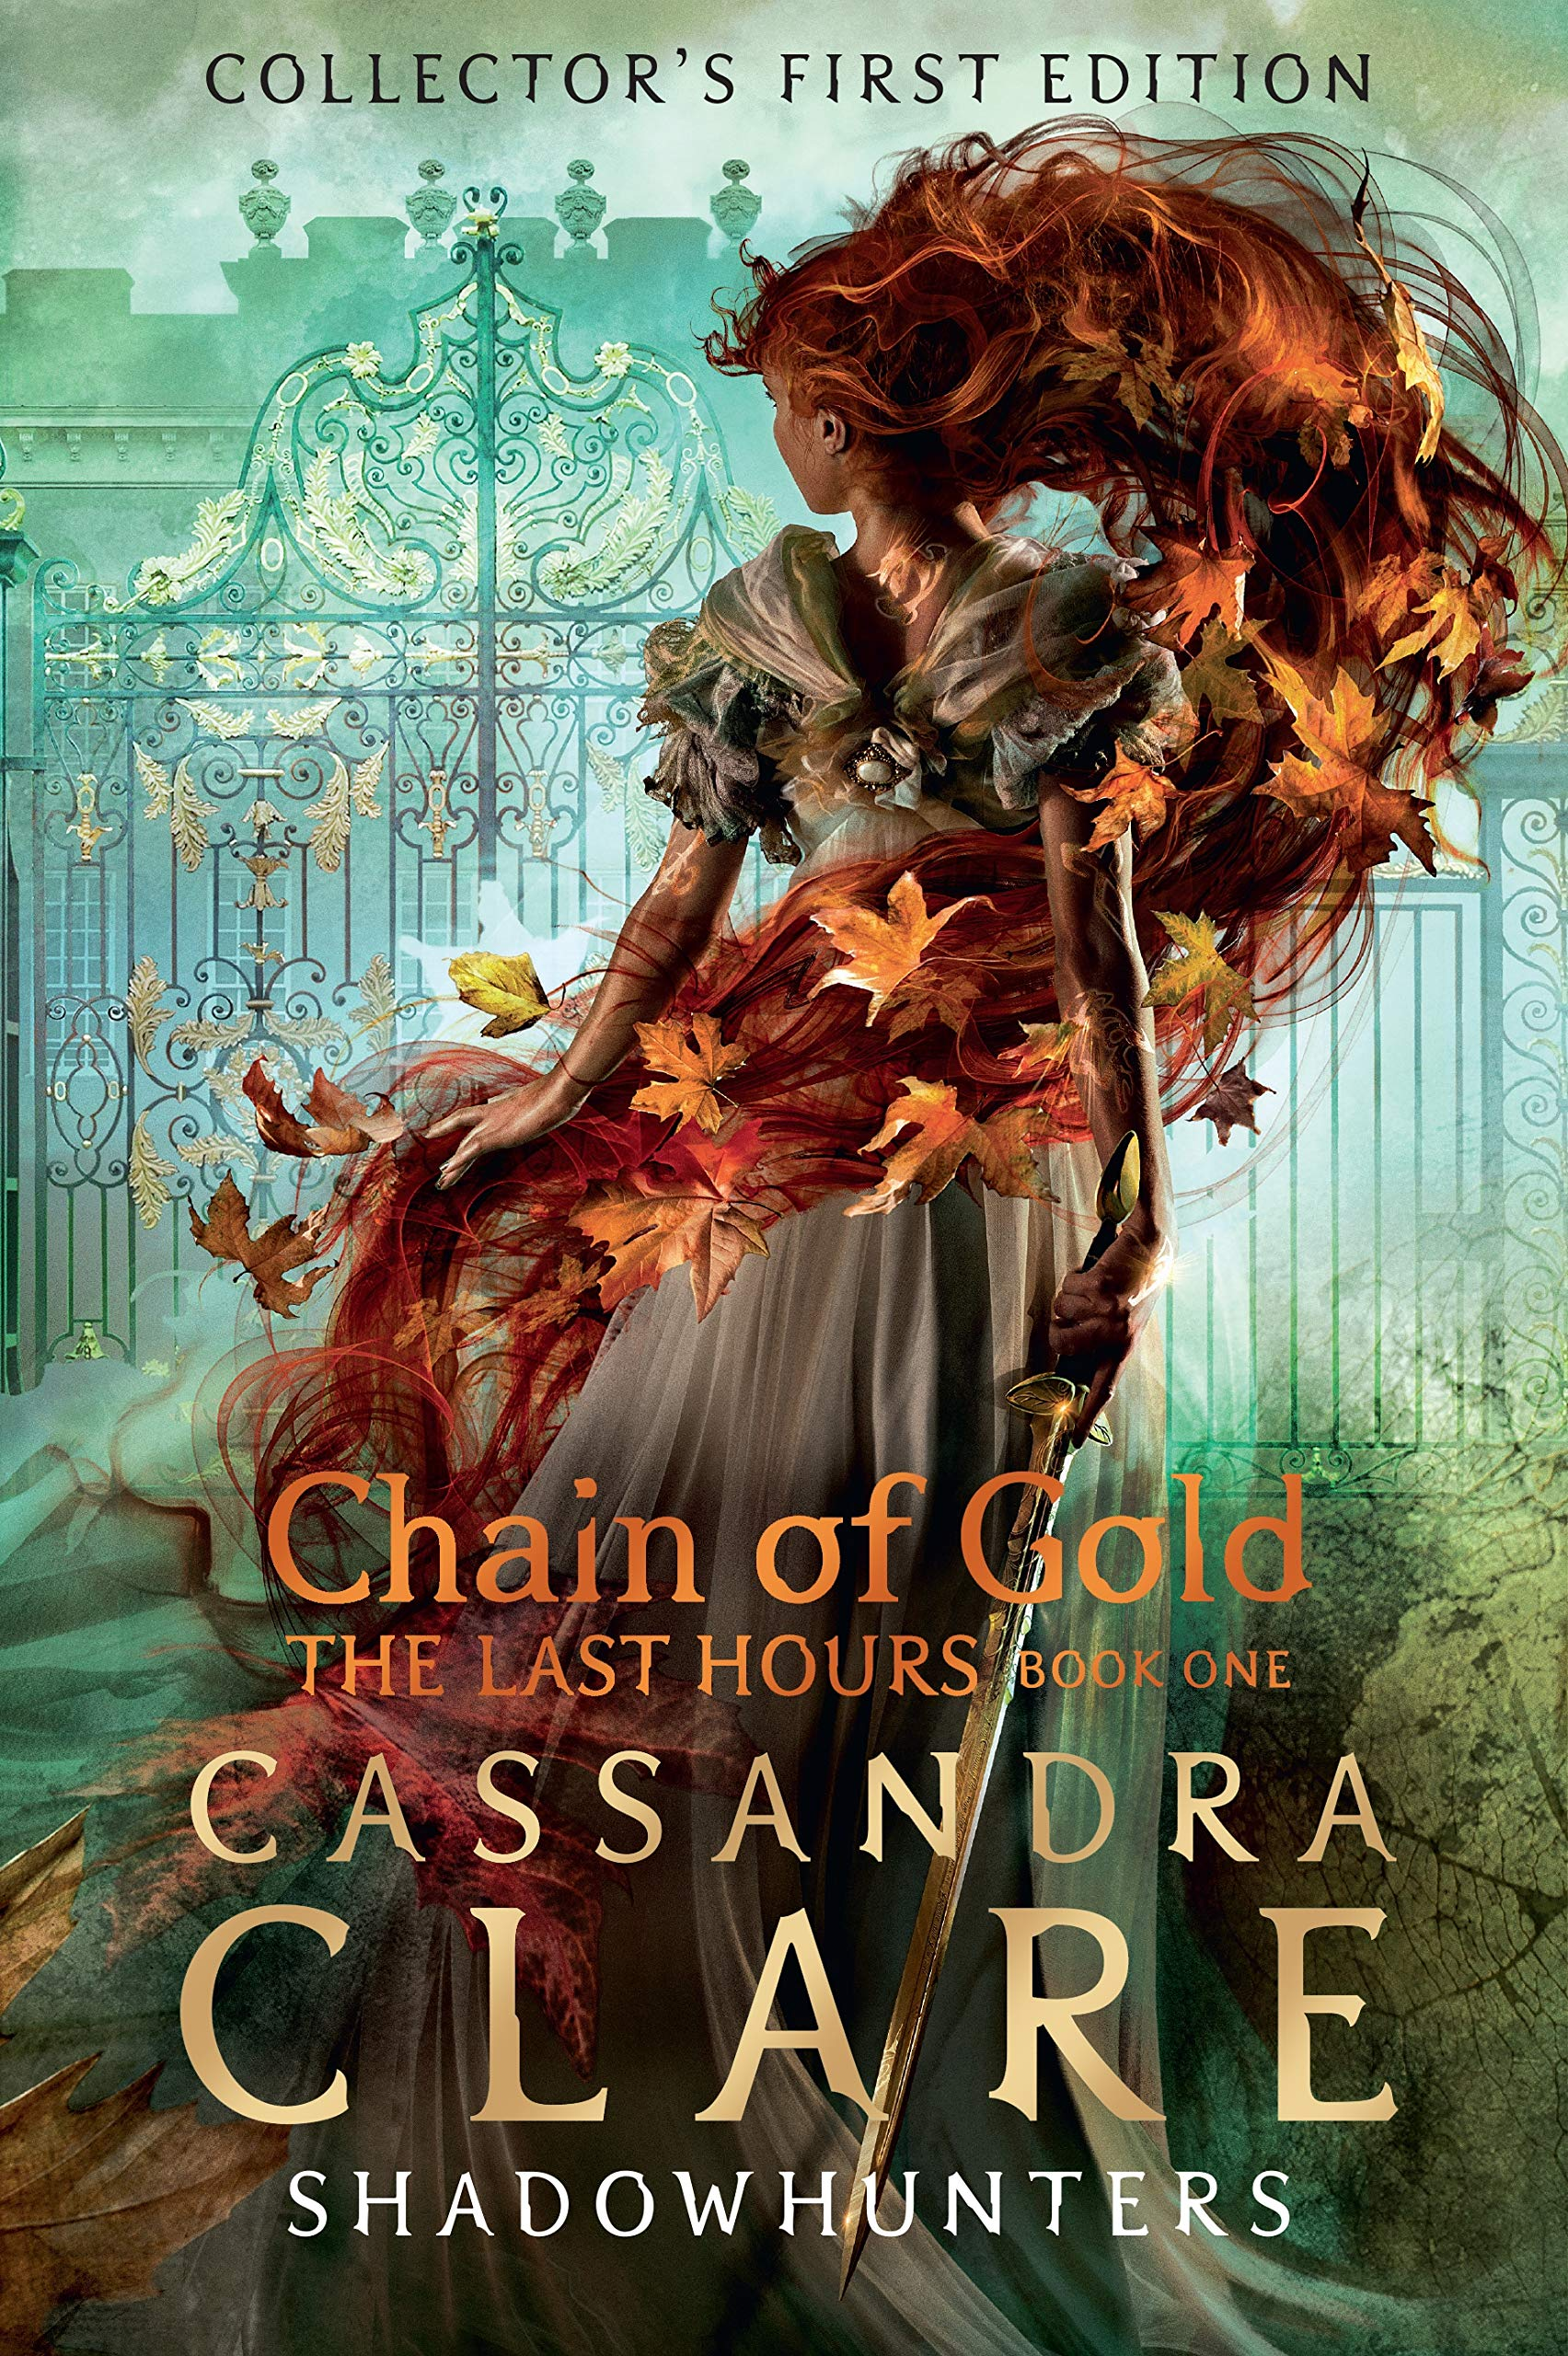 Amazon.fr - The Last Hours: Chain of Gold - Clare, Cassandra - Livres